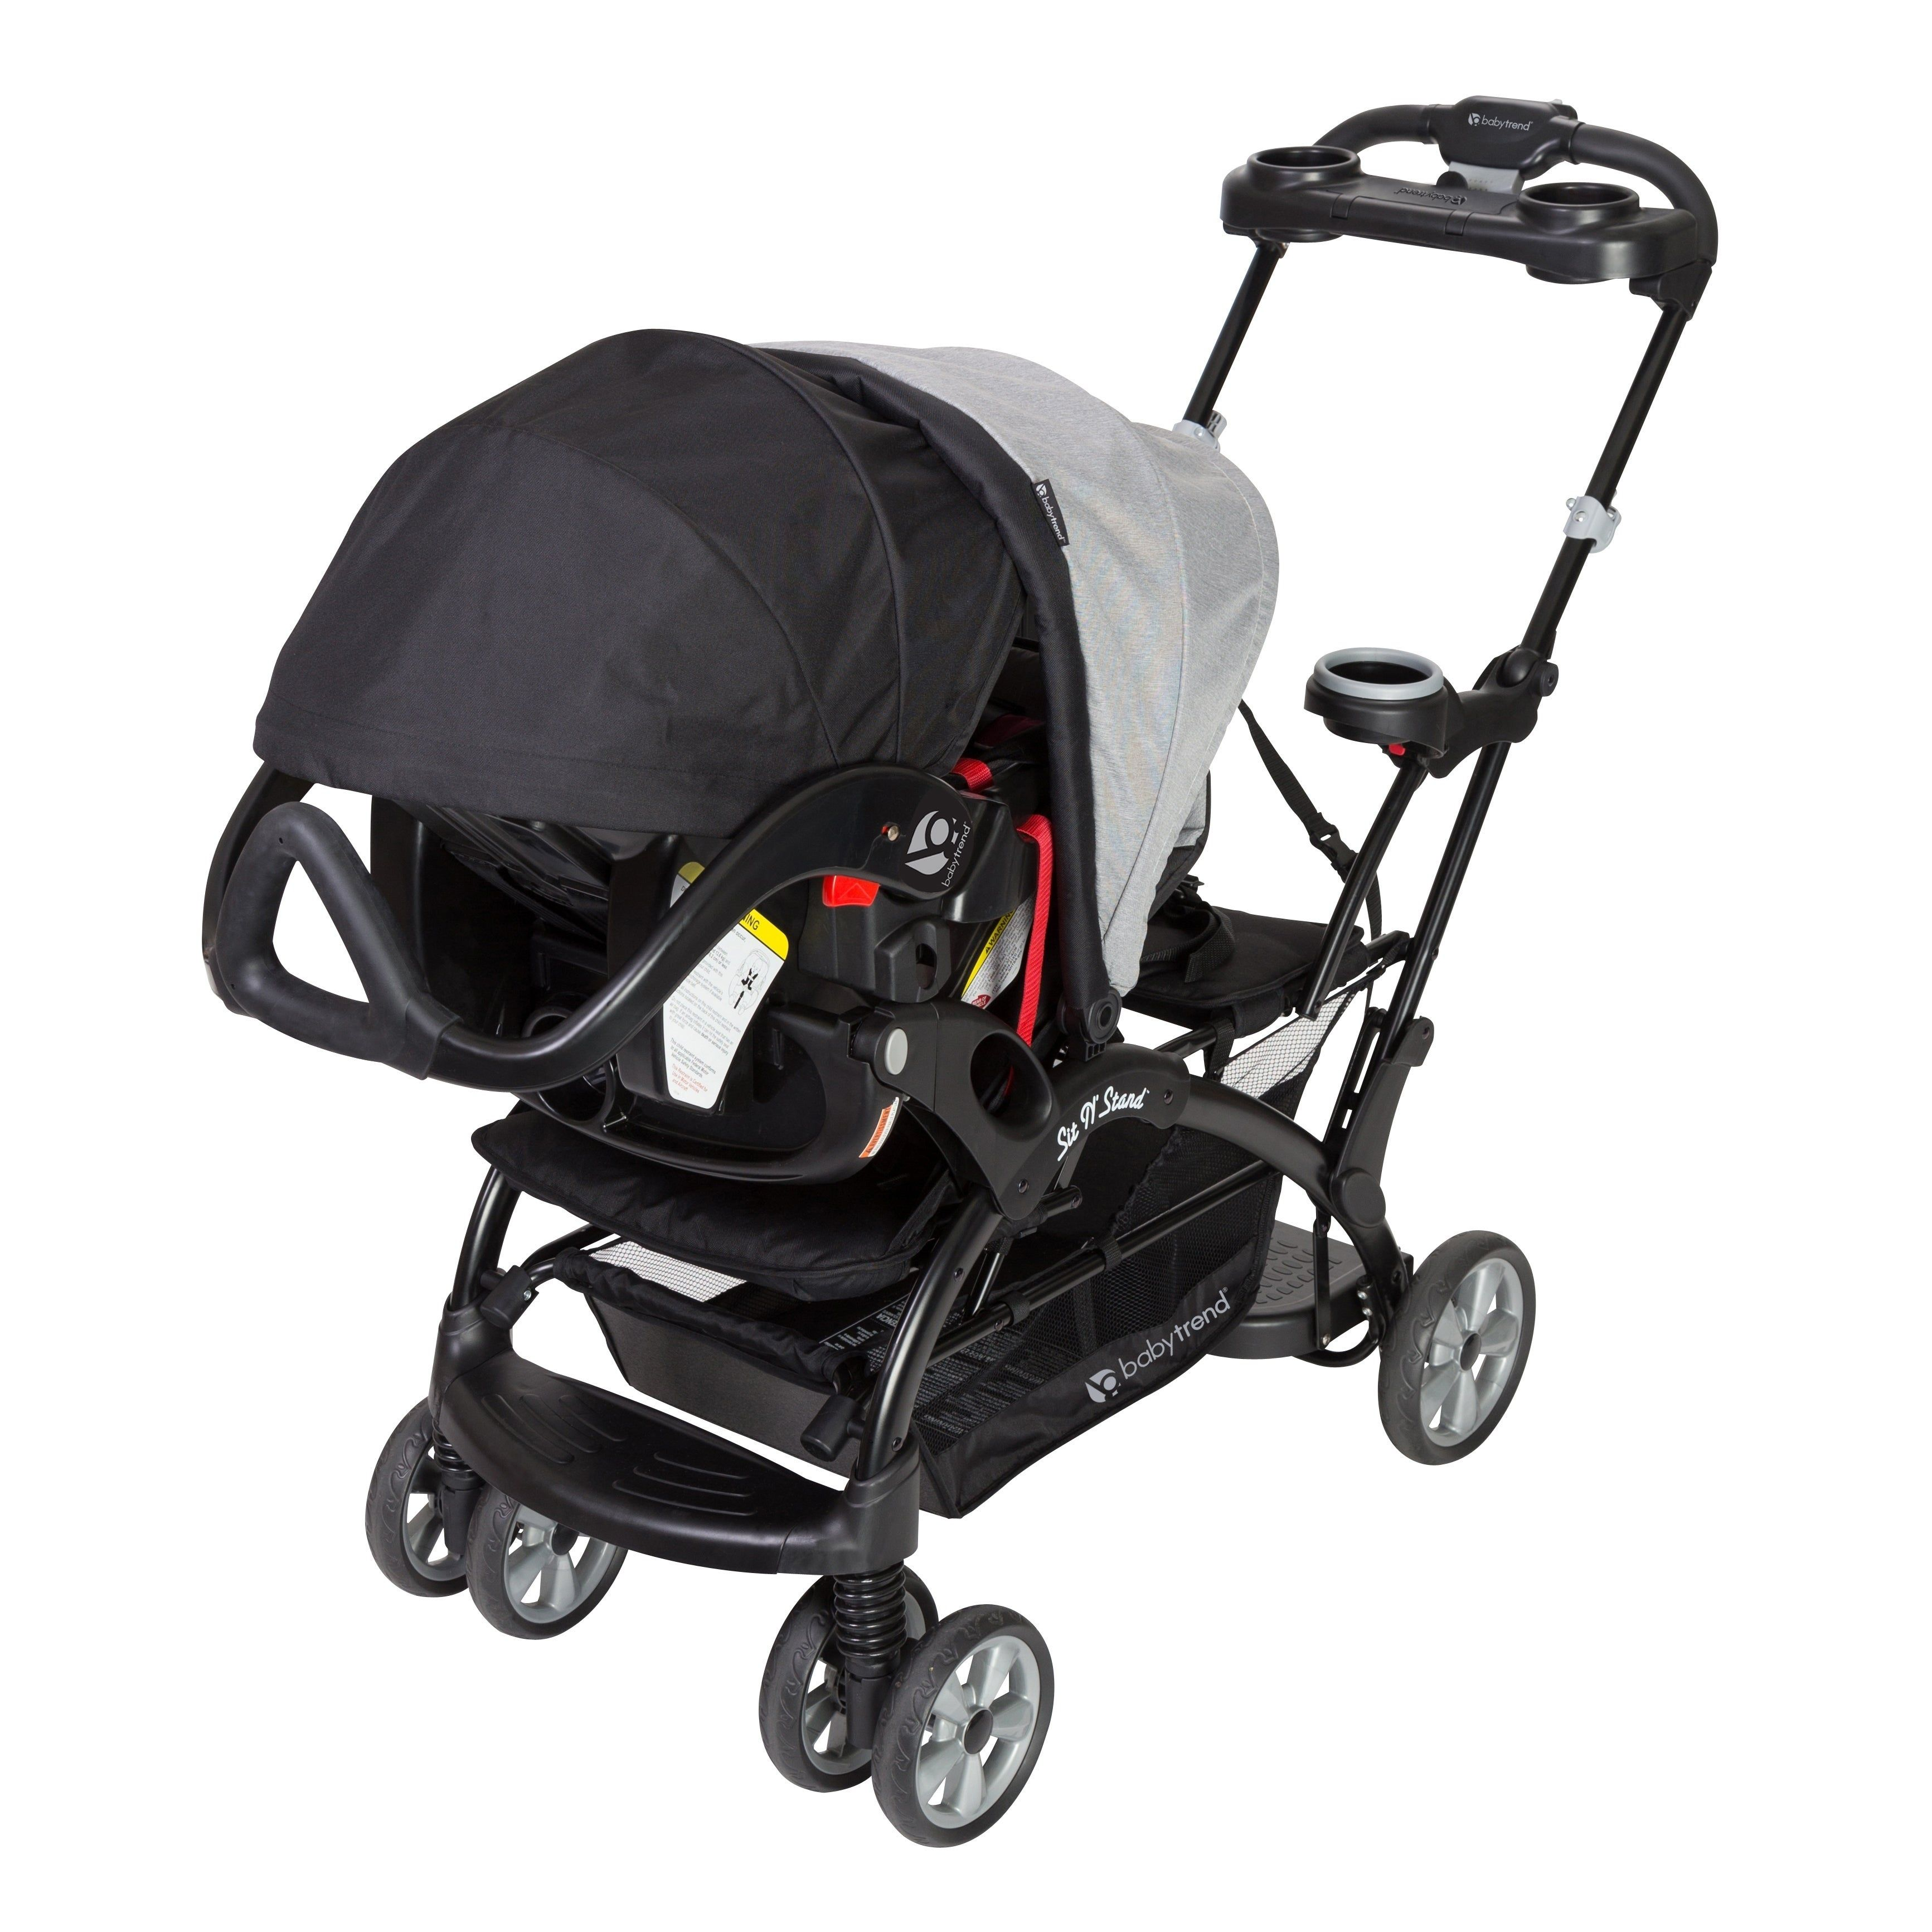 Baby Trend Stroller di 2020